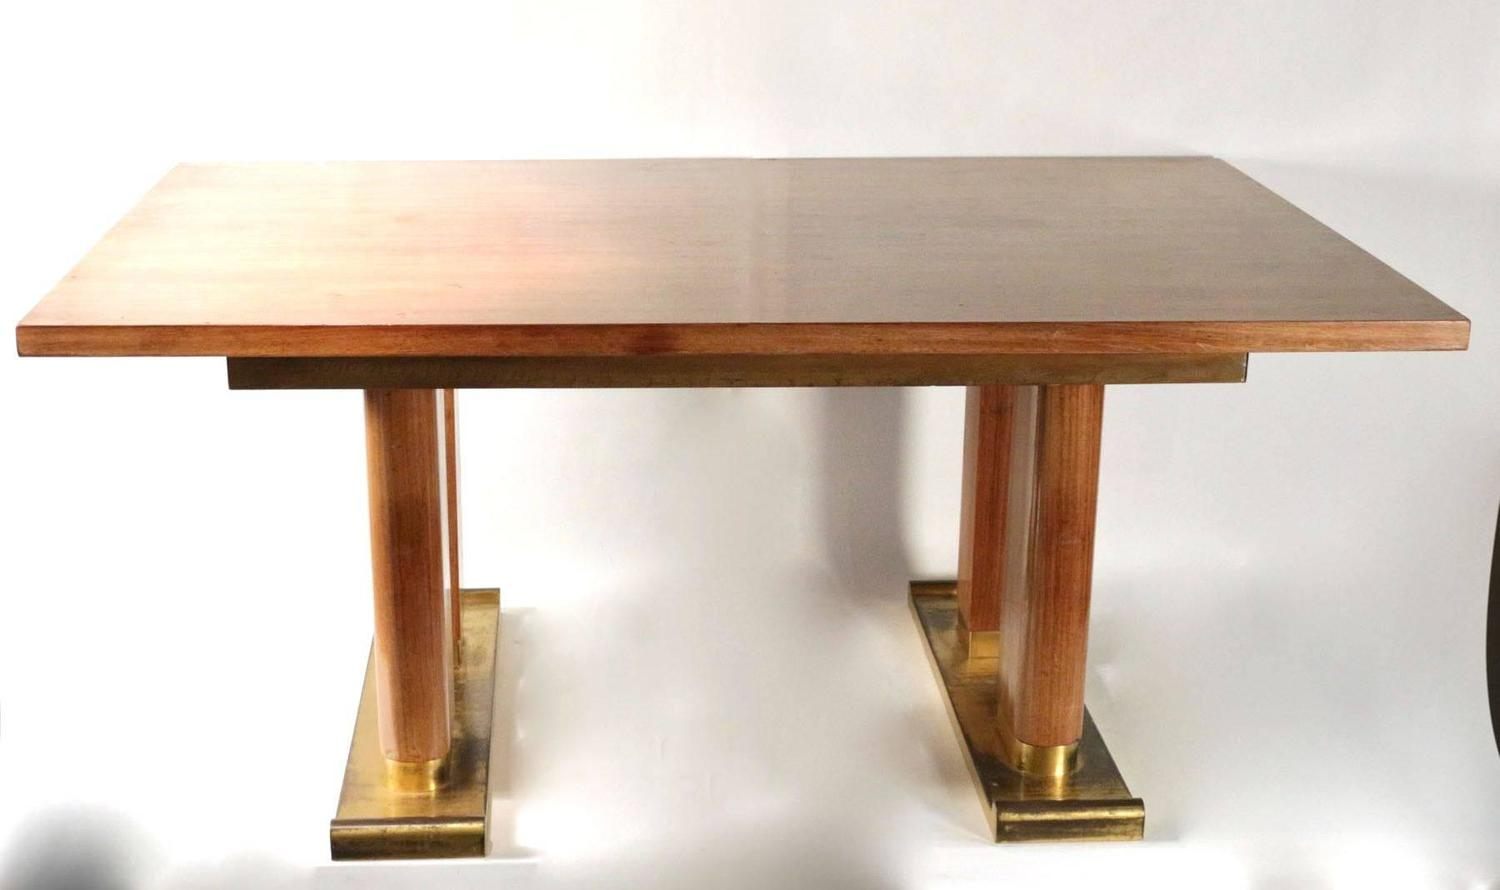 Dining room table by de coene belgium 1940s gilded for Most beautiful dining room tables